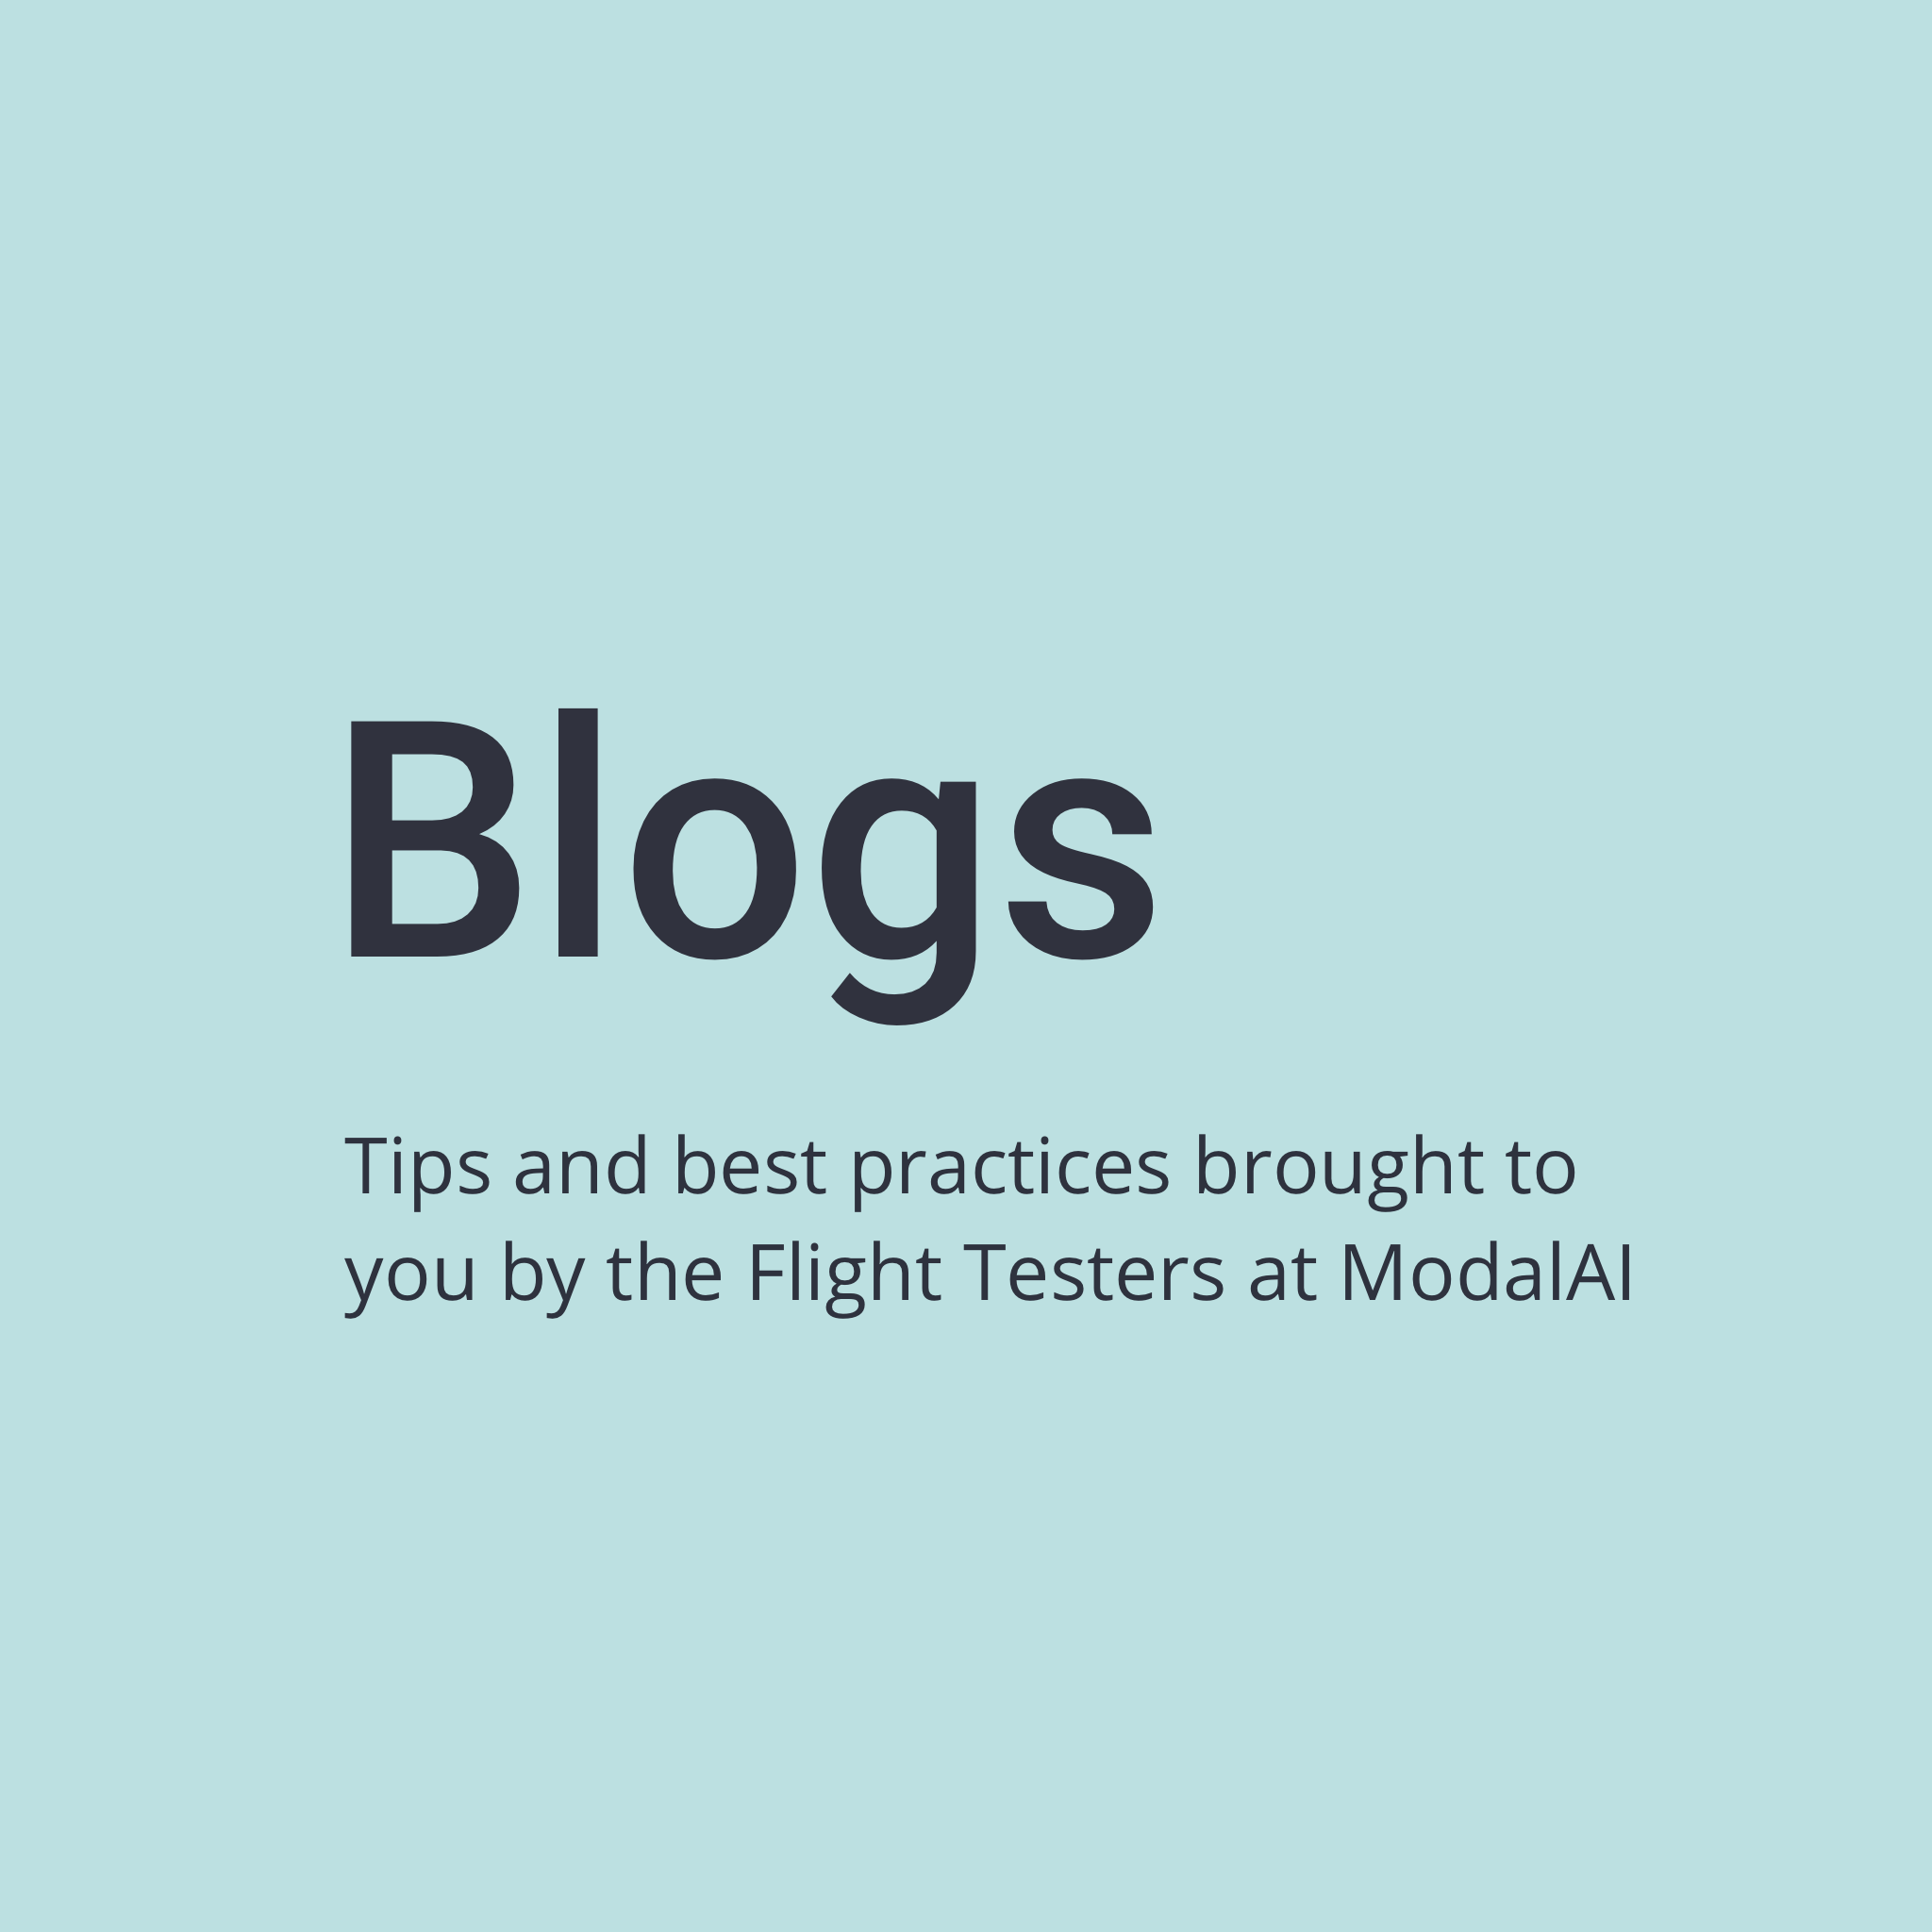 Blogs Tips and best practices brought to you by the flight testers at ModalAI